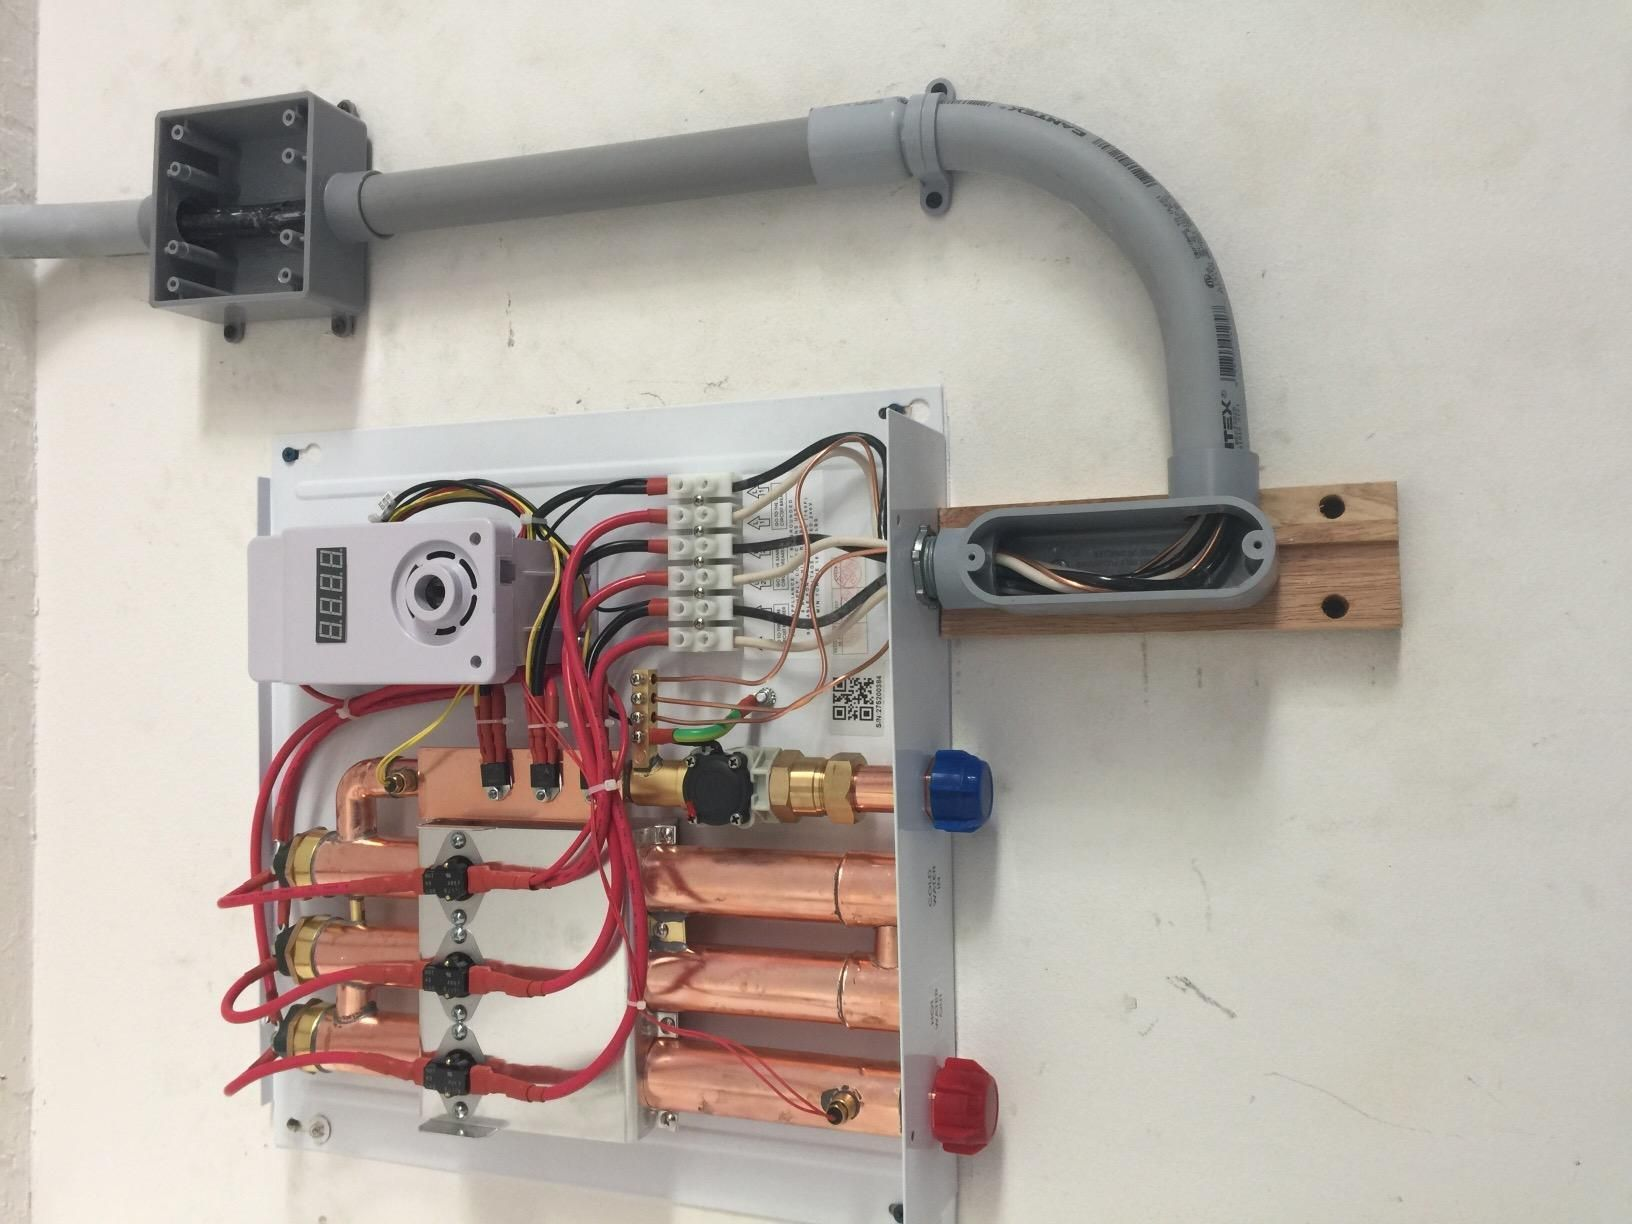 small resolution of prior to purchase and installation please verify this model is the rights size for your hot water needs and electrical requirements